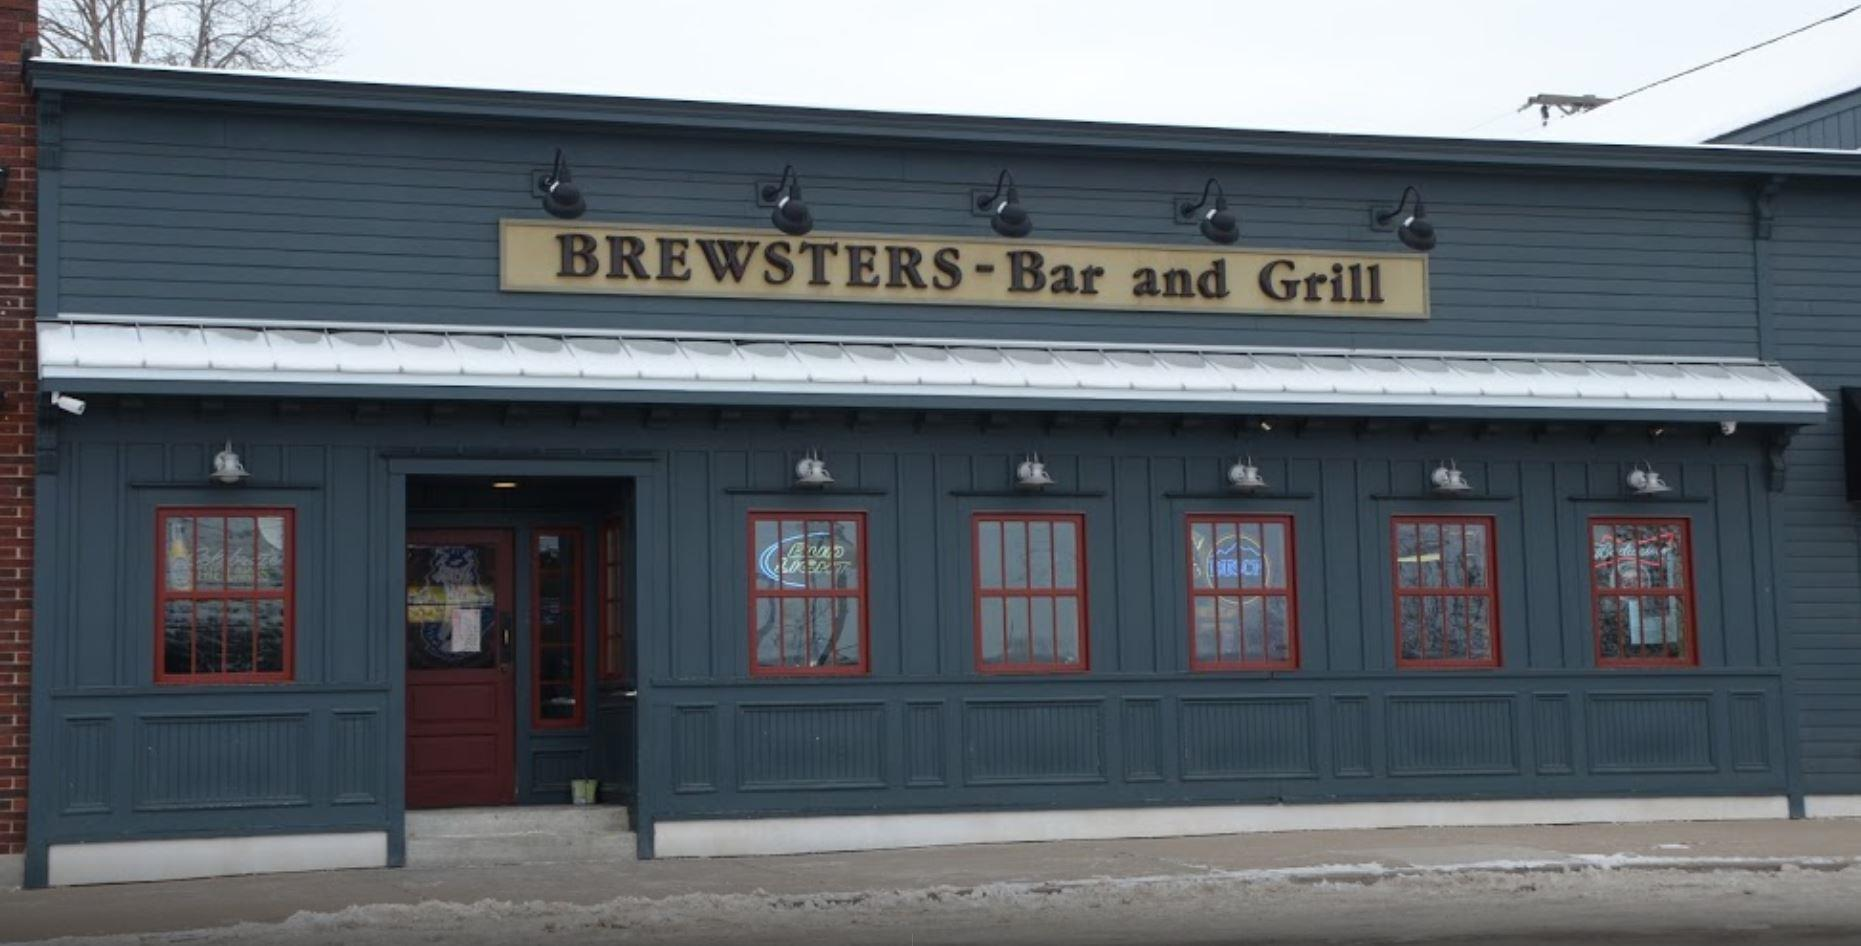 Brewster's Bar and Grill